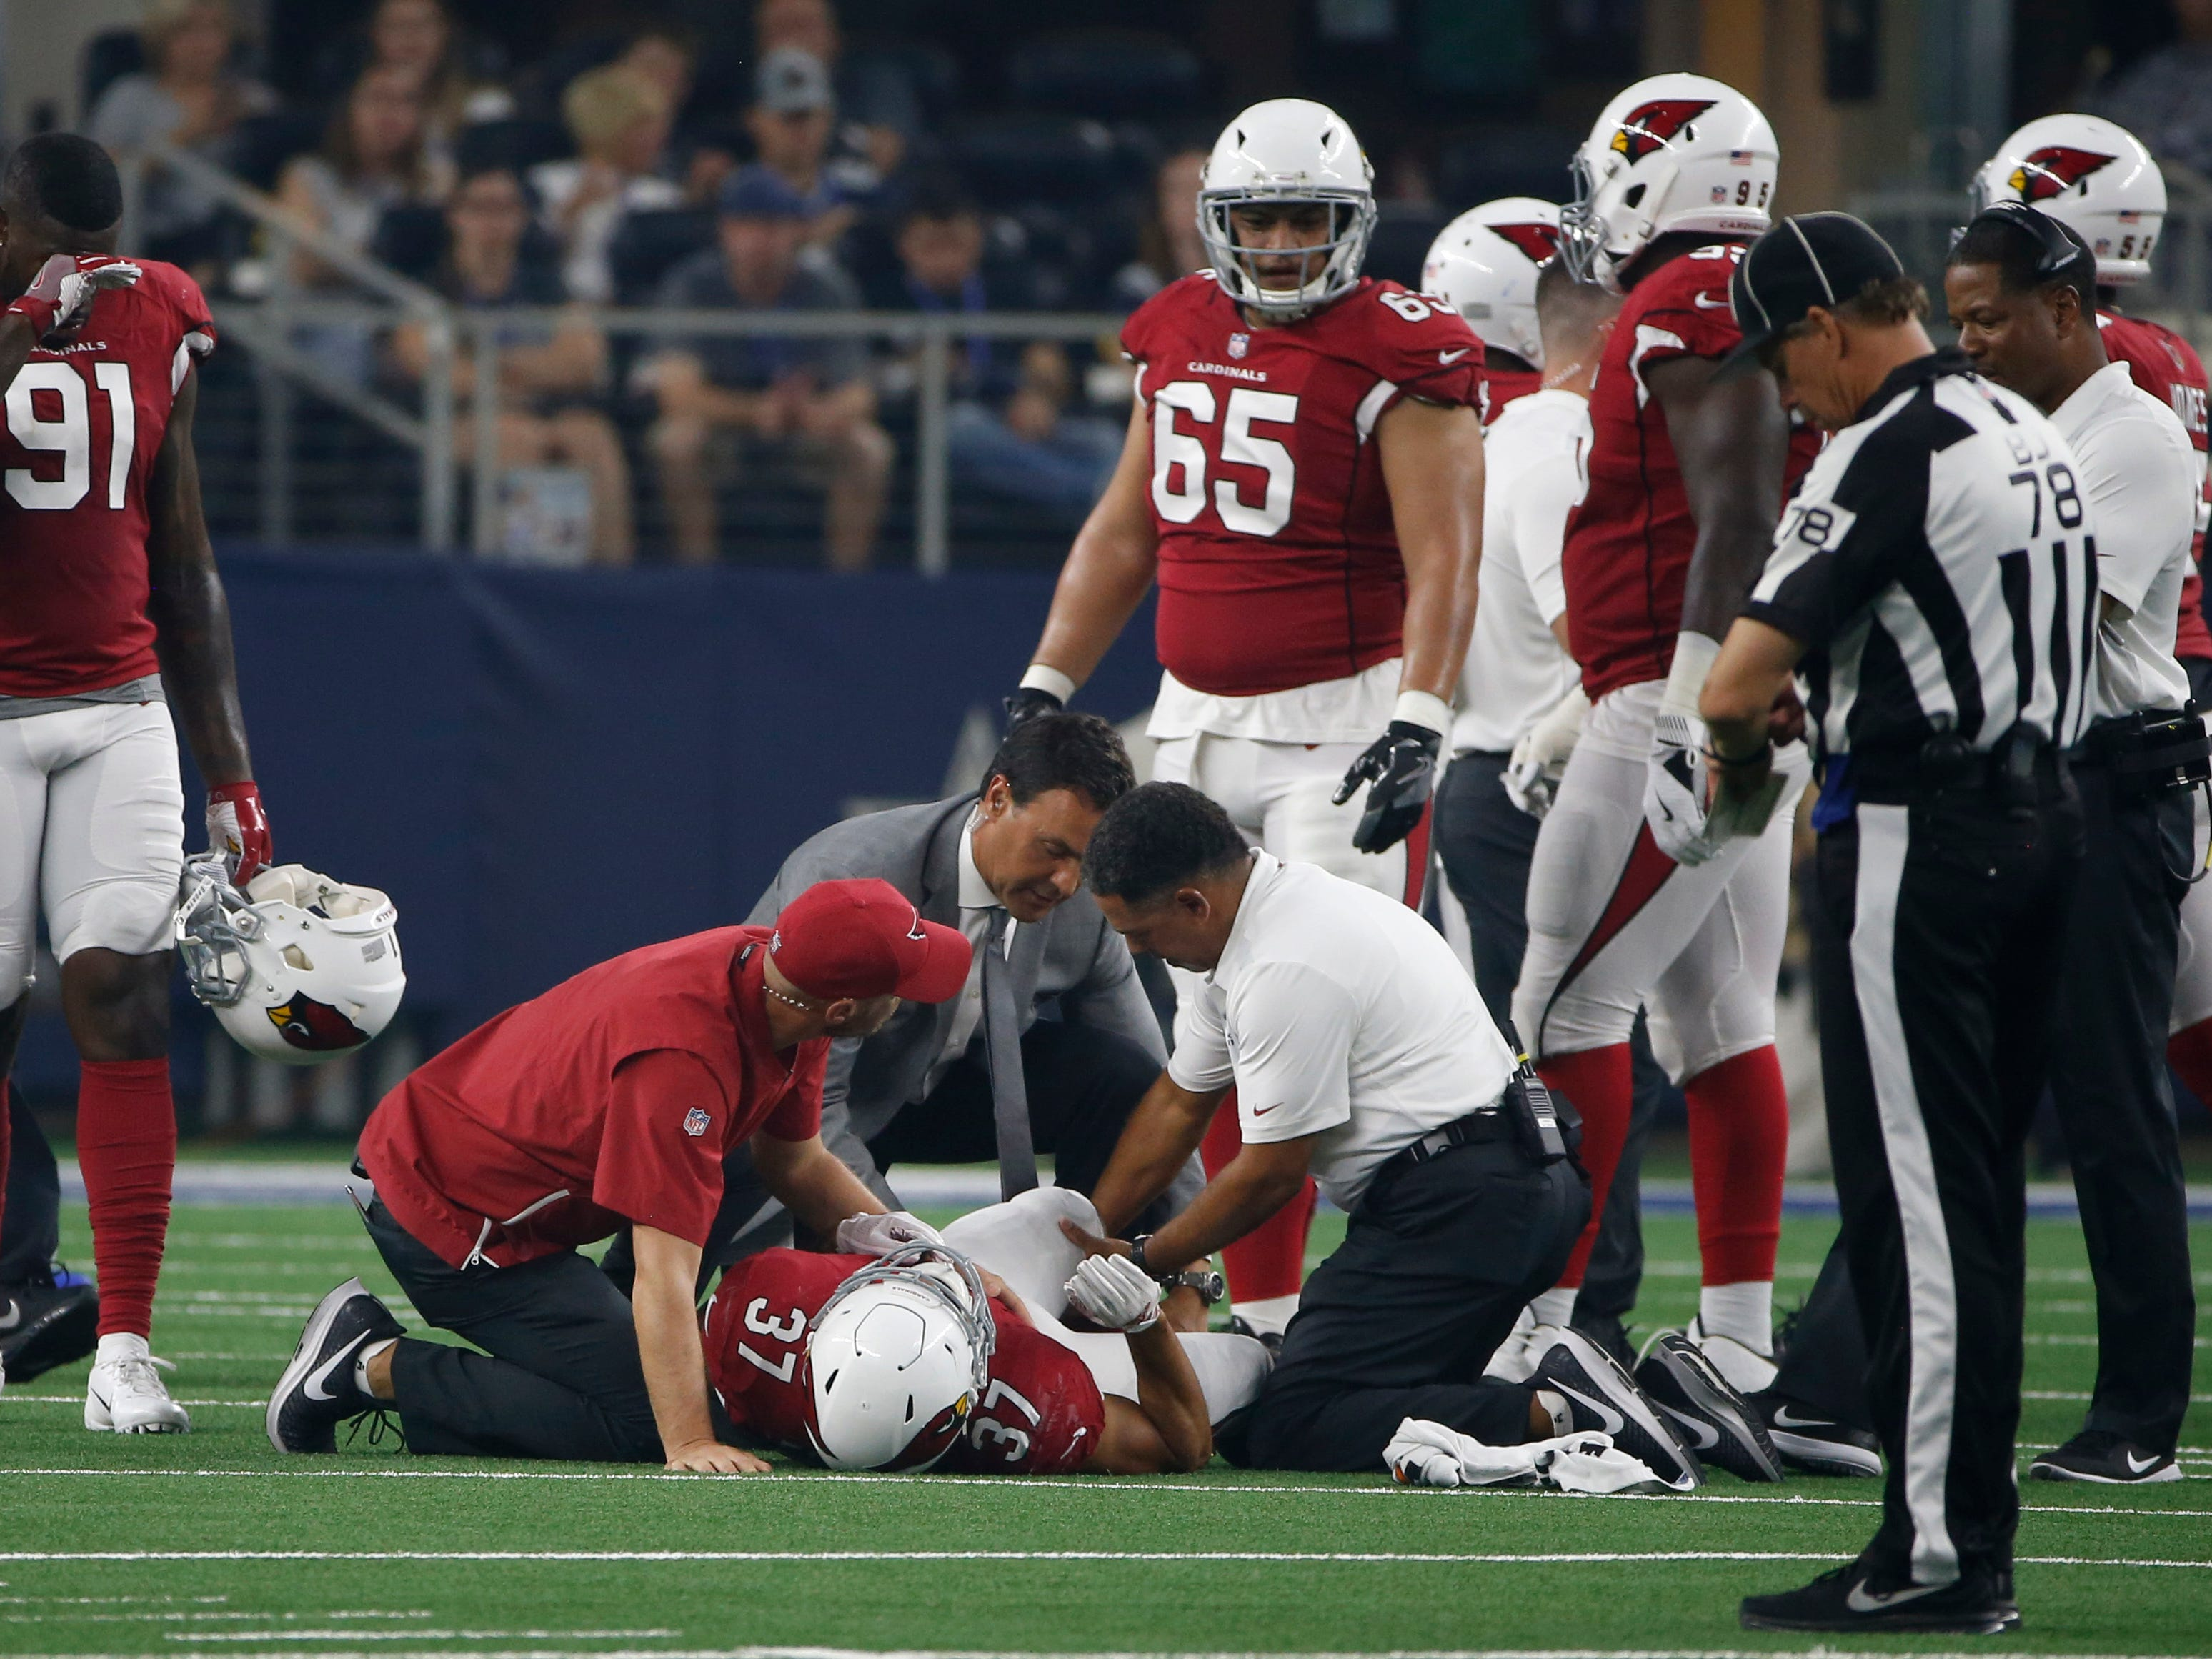 Arizona Cardinals running back D.J. Foster (37) is helped off of the field after an injury during the first half of a preseason NFL football game against the Dallas Cowboys in Arlington, Texas, Sunday, Aug. 26, 2018. (AP Photo/Ron Jenkins)